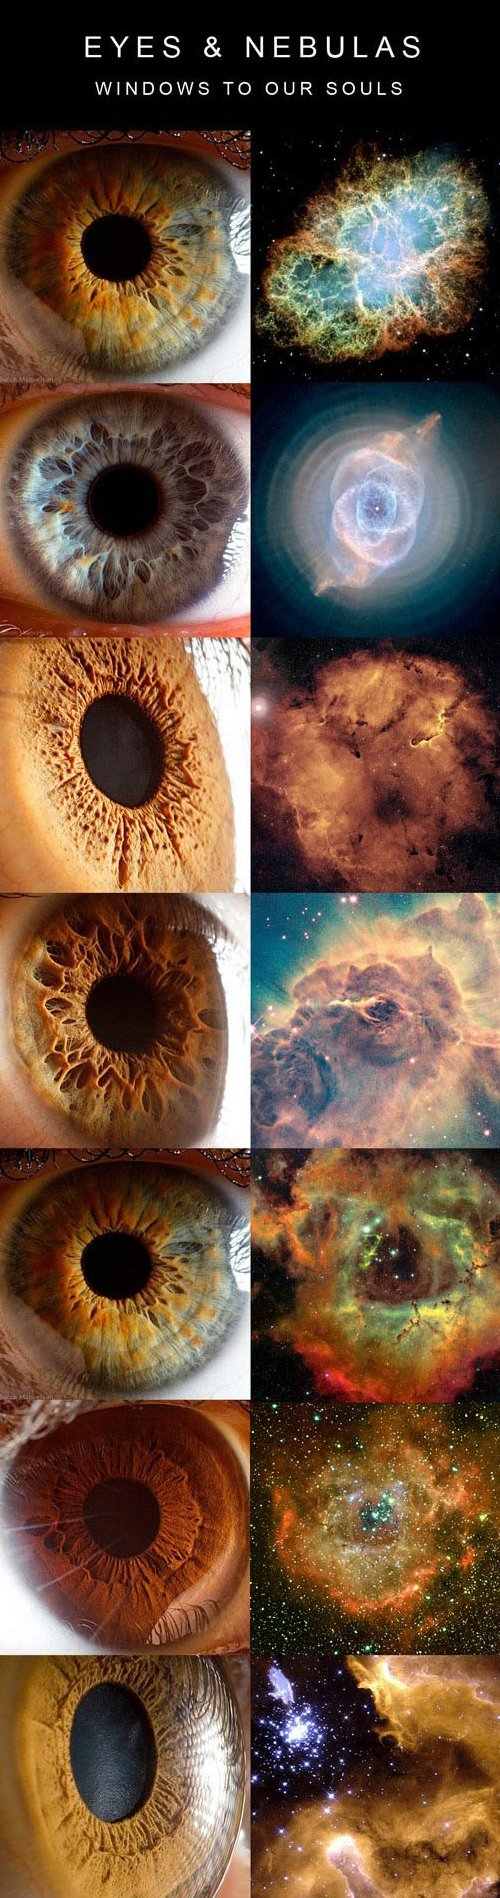 Eyes and Nebulas